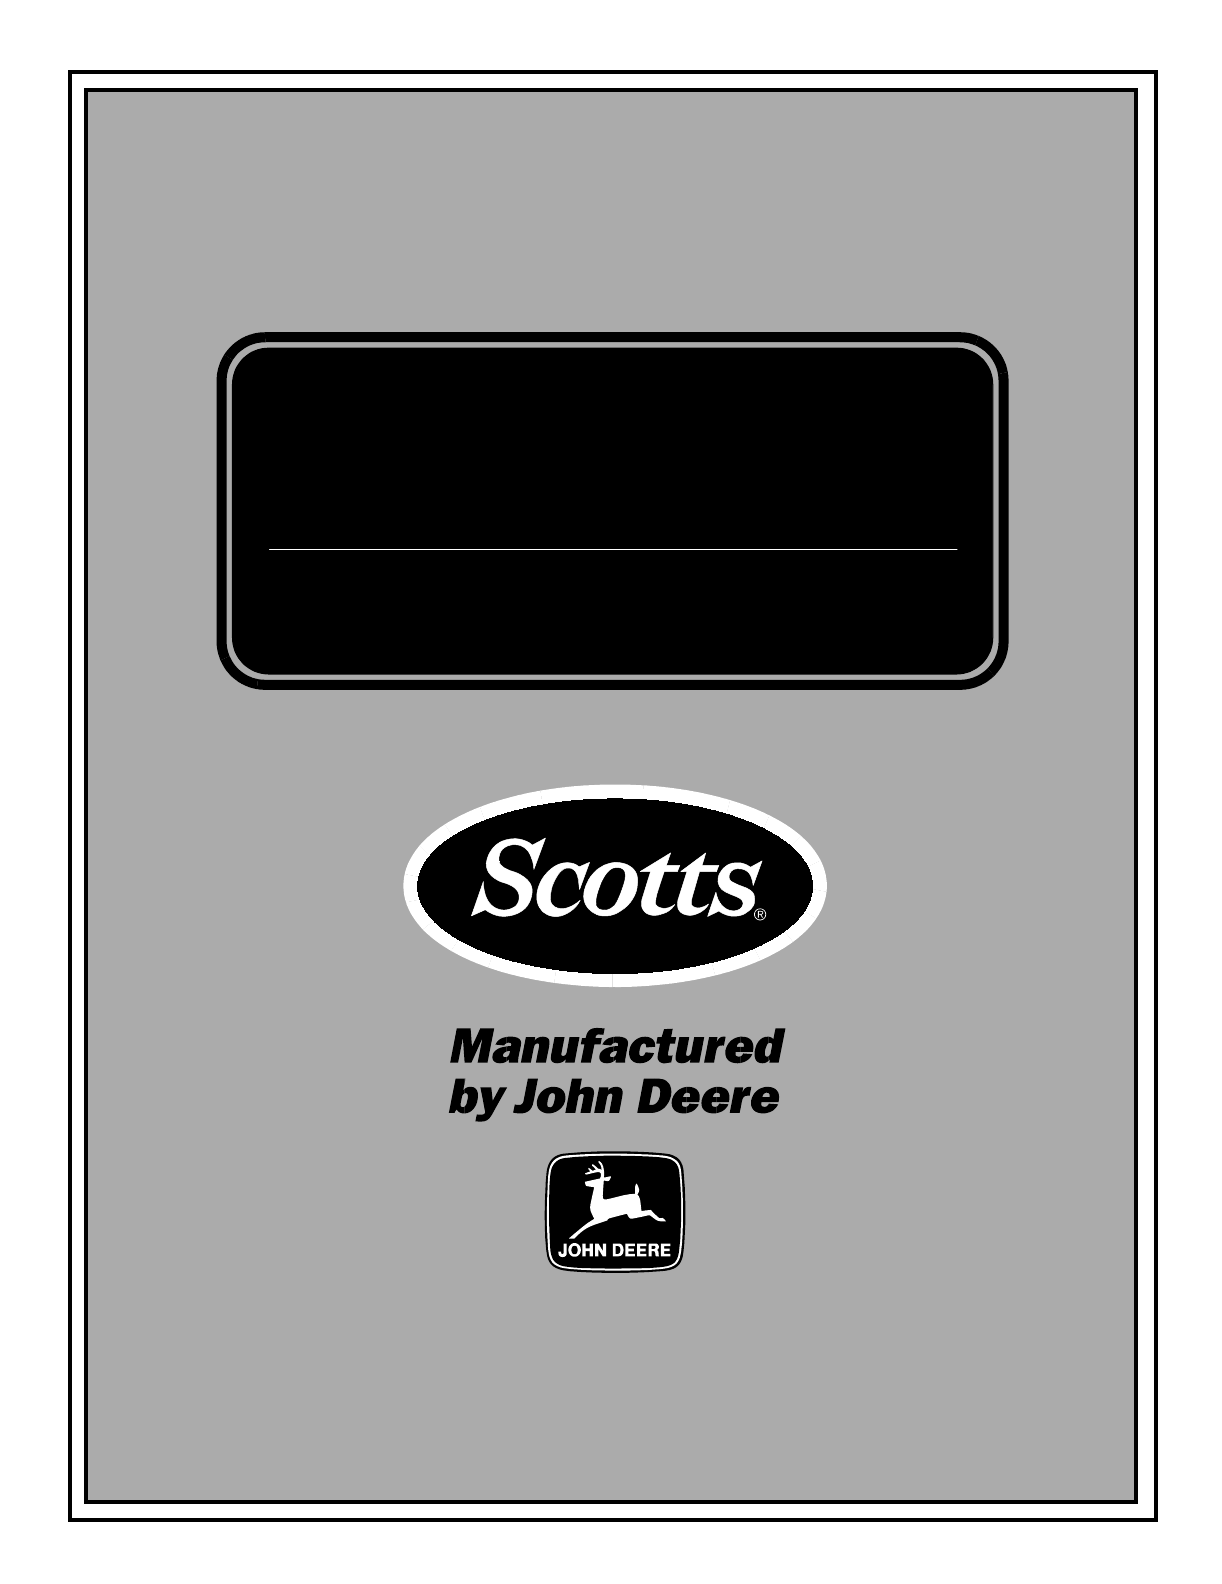 2141e15a 36a6 9594 0166 6f10fba50f44 bg1 scotts lawn mower s1642, s1742, s2046 user guide manualsonline com scotts wiring diagrams free at edmiracle.co